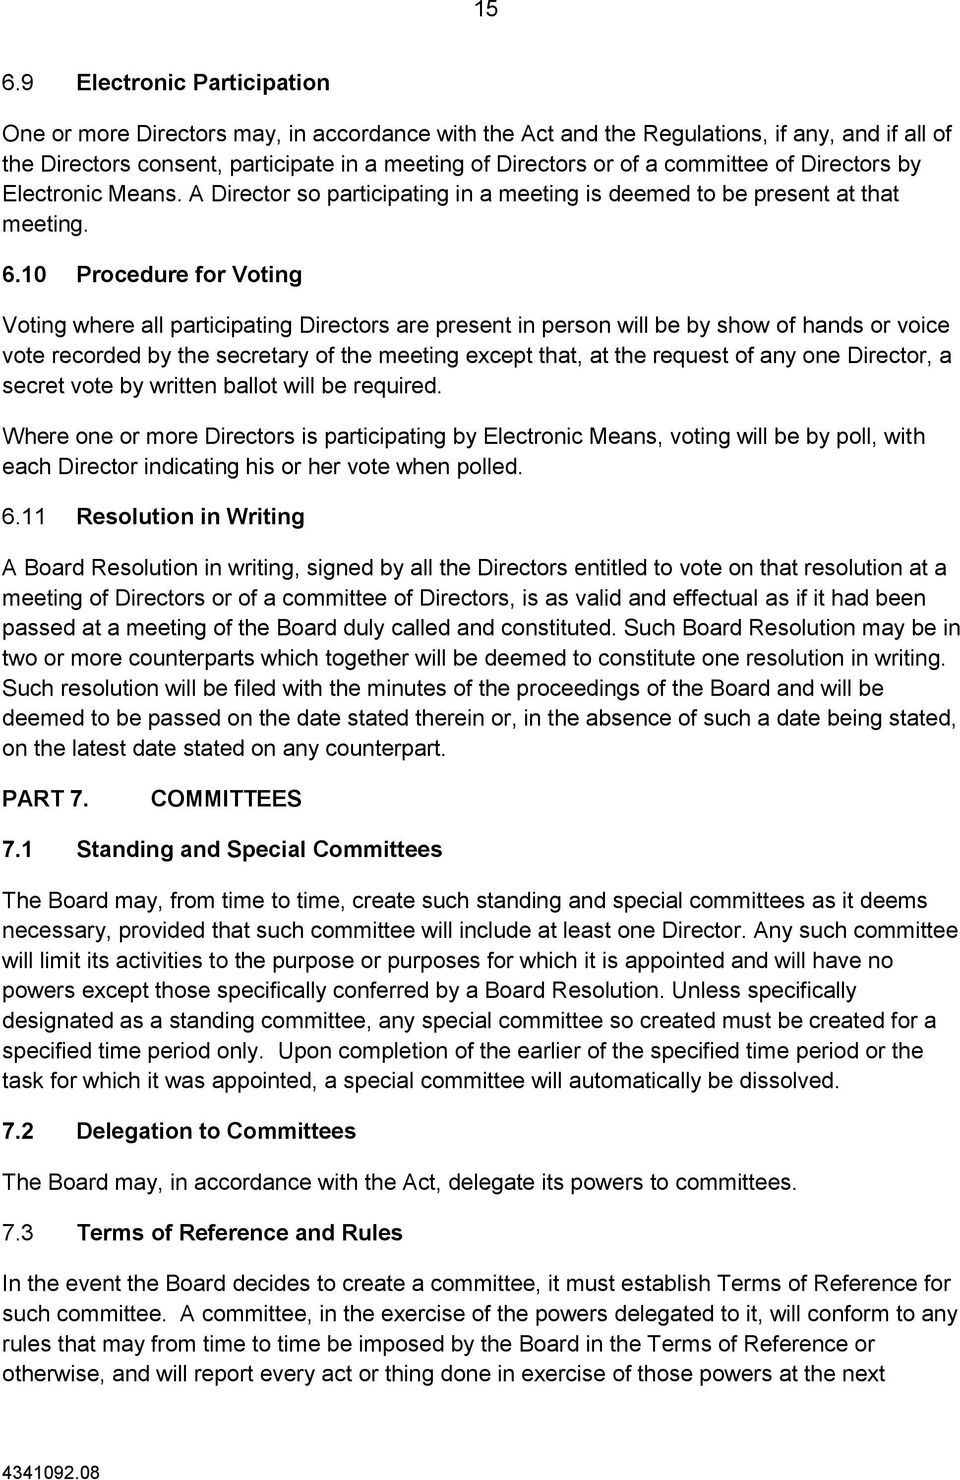 10 Procedure for Voting Voting where all participating Directors are present in person will be by show of hands or voice vote recorded by the secretary of the meeting except that, at the request of